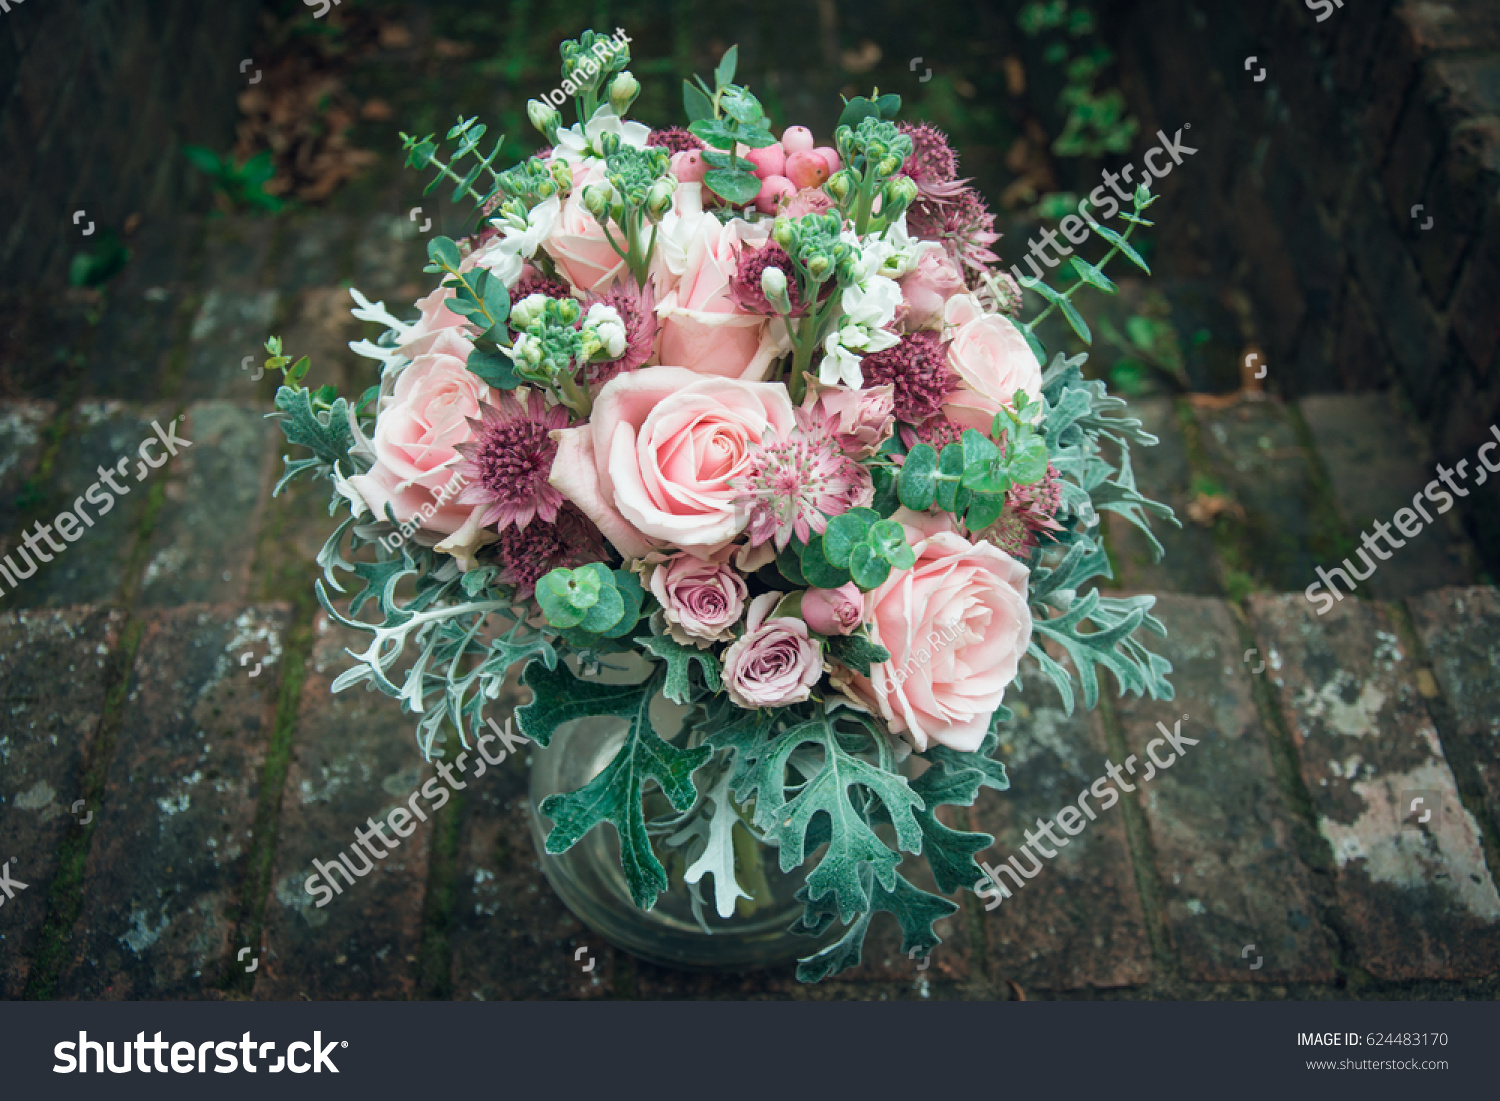 Amazing Bohemian Bouquet Pink Spring Flowers Stock Photo Edit Now 624483170